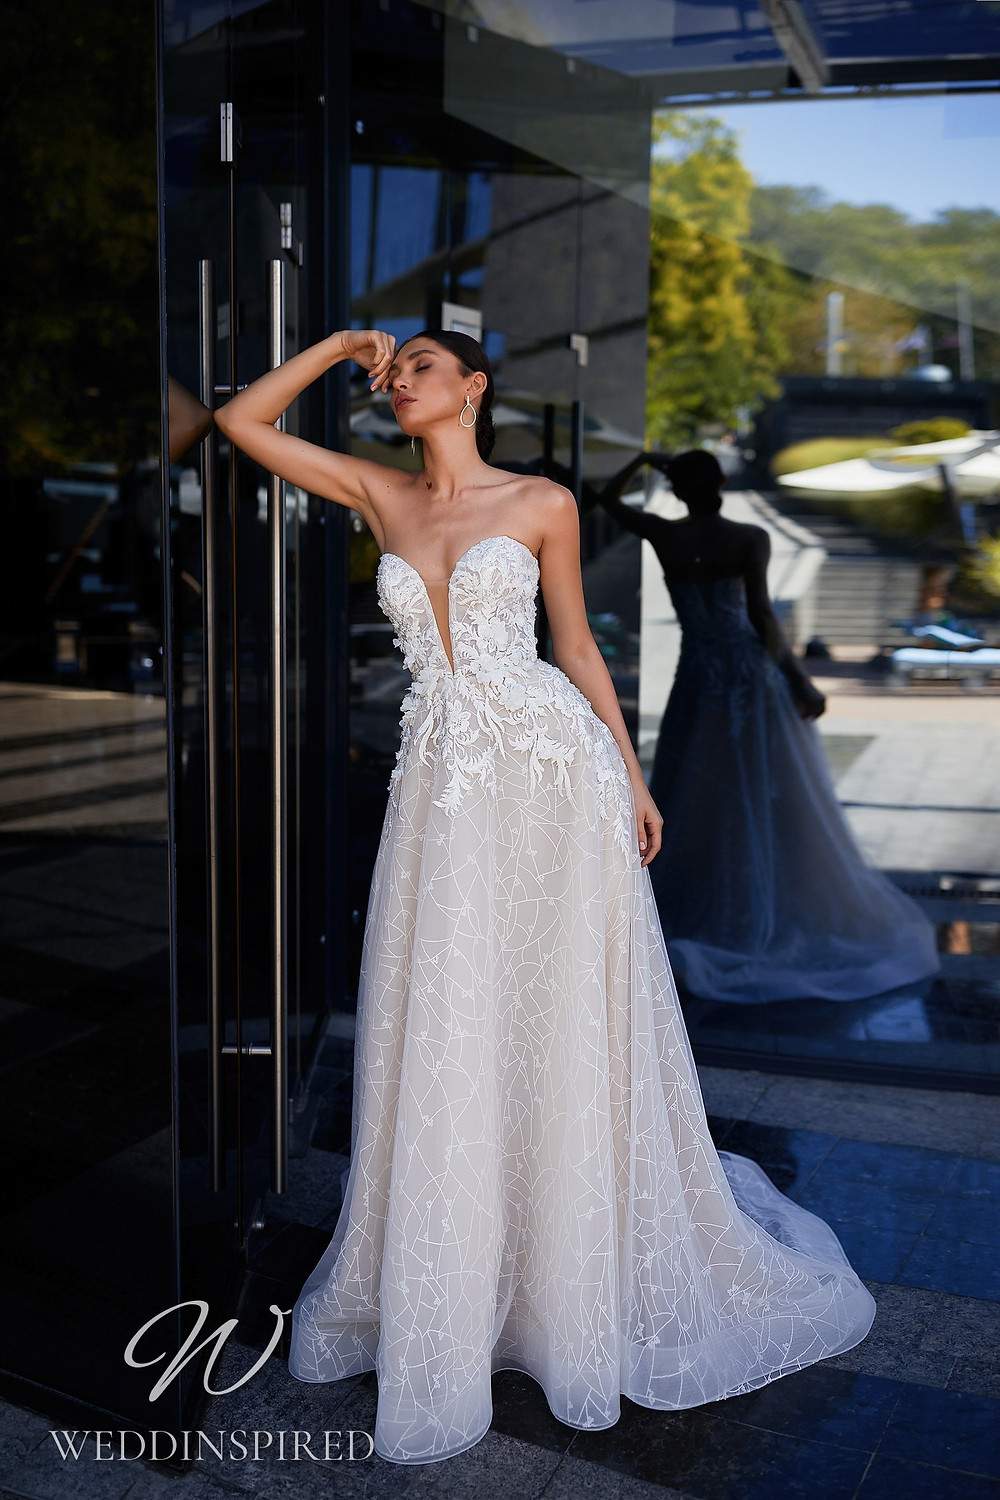 An Ida Torez 2021 strapless tulle and lace A-line wedding dress